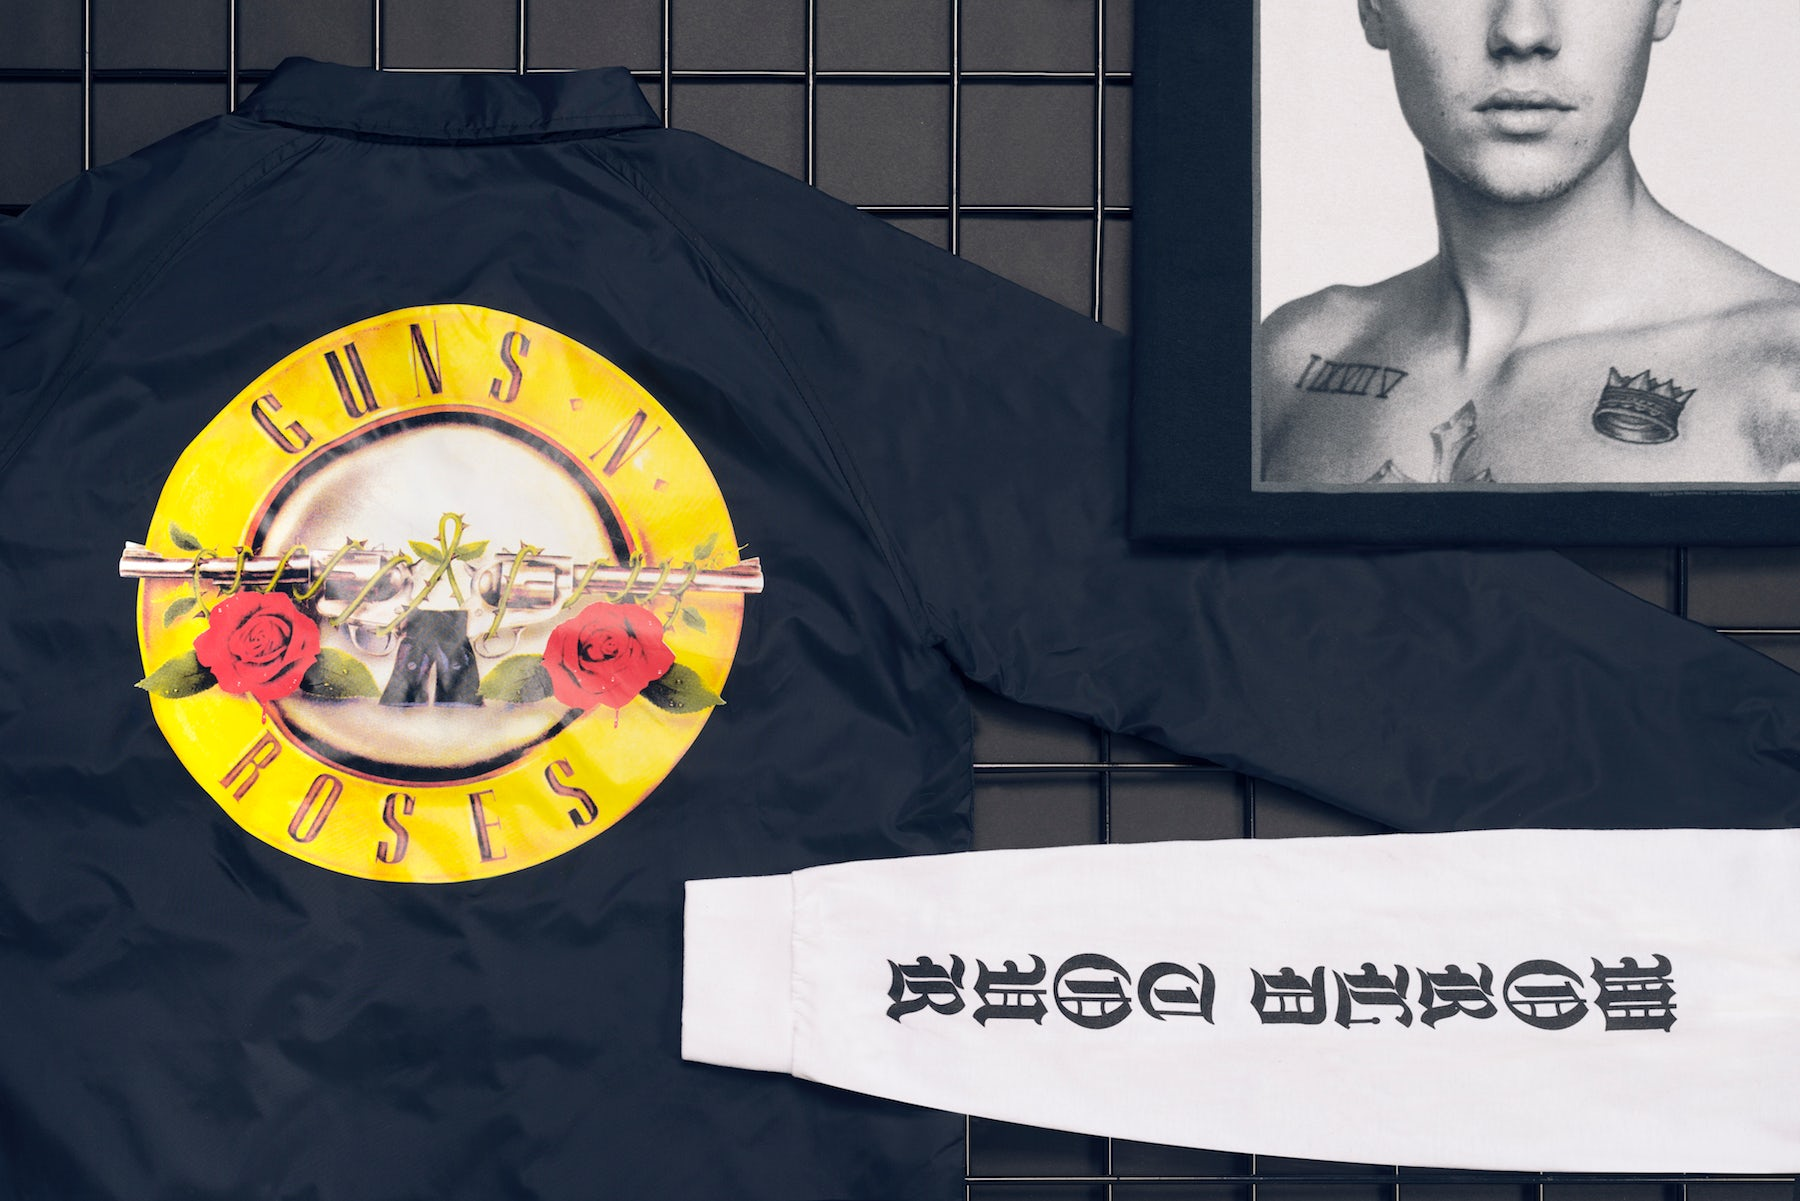 Tour merchandise from Guns 'N Roses and Justin Bieber's Purpose tour | Photo: Richie Talboy and Lucas Lefler for BoF